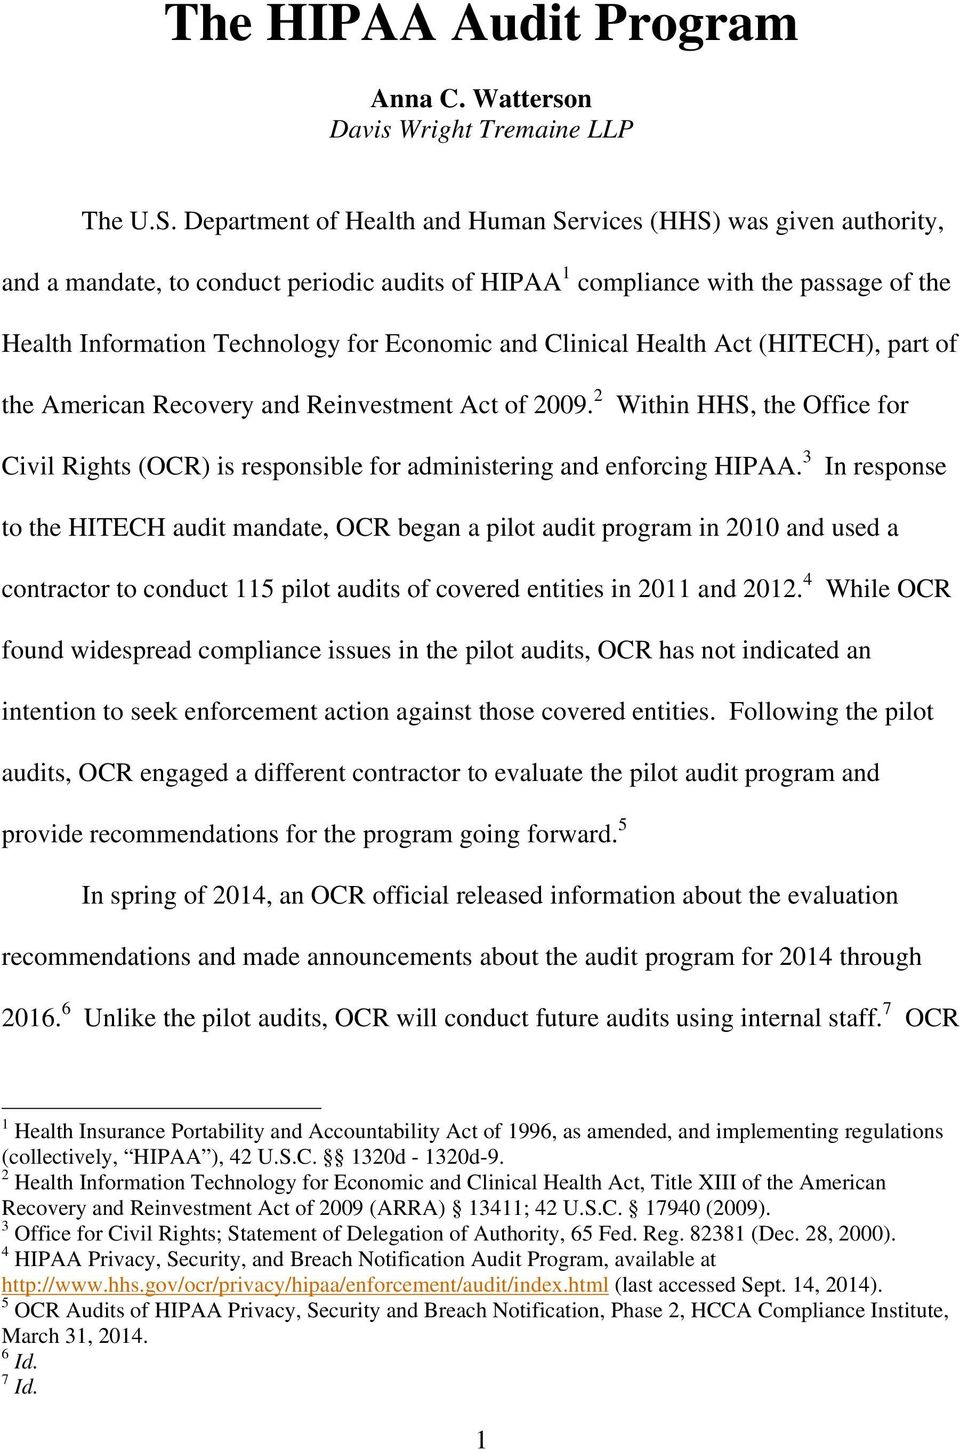 and Clinical Health Act (HITECH), part of the American Recovery and Reinvestment Act of 2009. 2 Within HHS, the Office for Civil Rights (OCR) is responsible for administering and enforcing HIPAA.